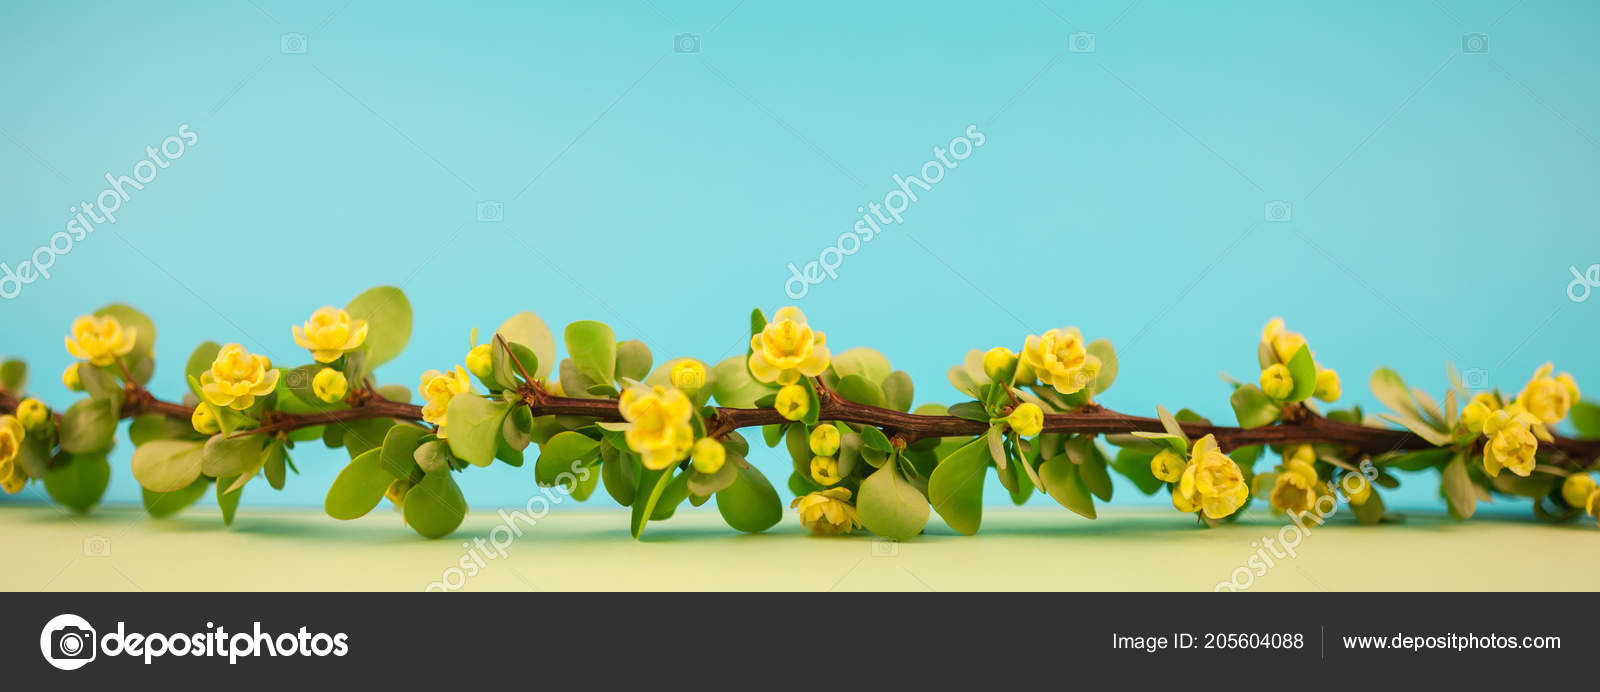 Spring blossoming barberry branch green leaves barbs yellow flowers spring blossoming barberry branch green leaves barbs yellow flowers pastel stock photo mightylinksfo